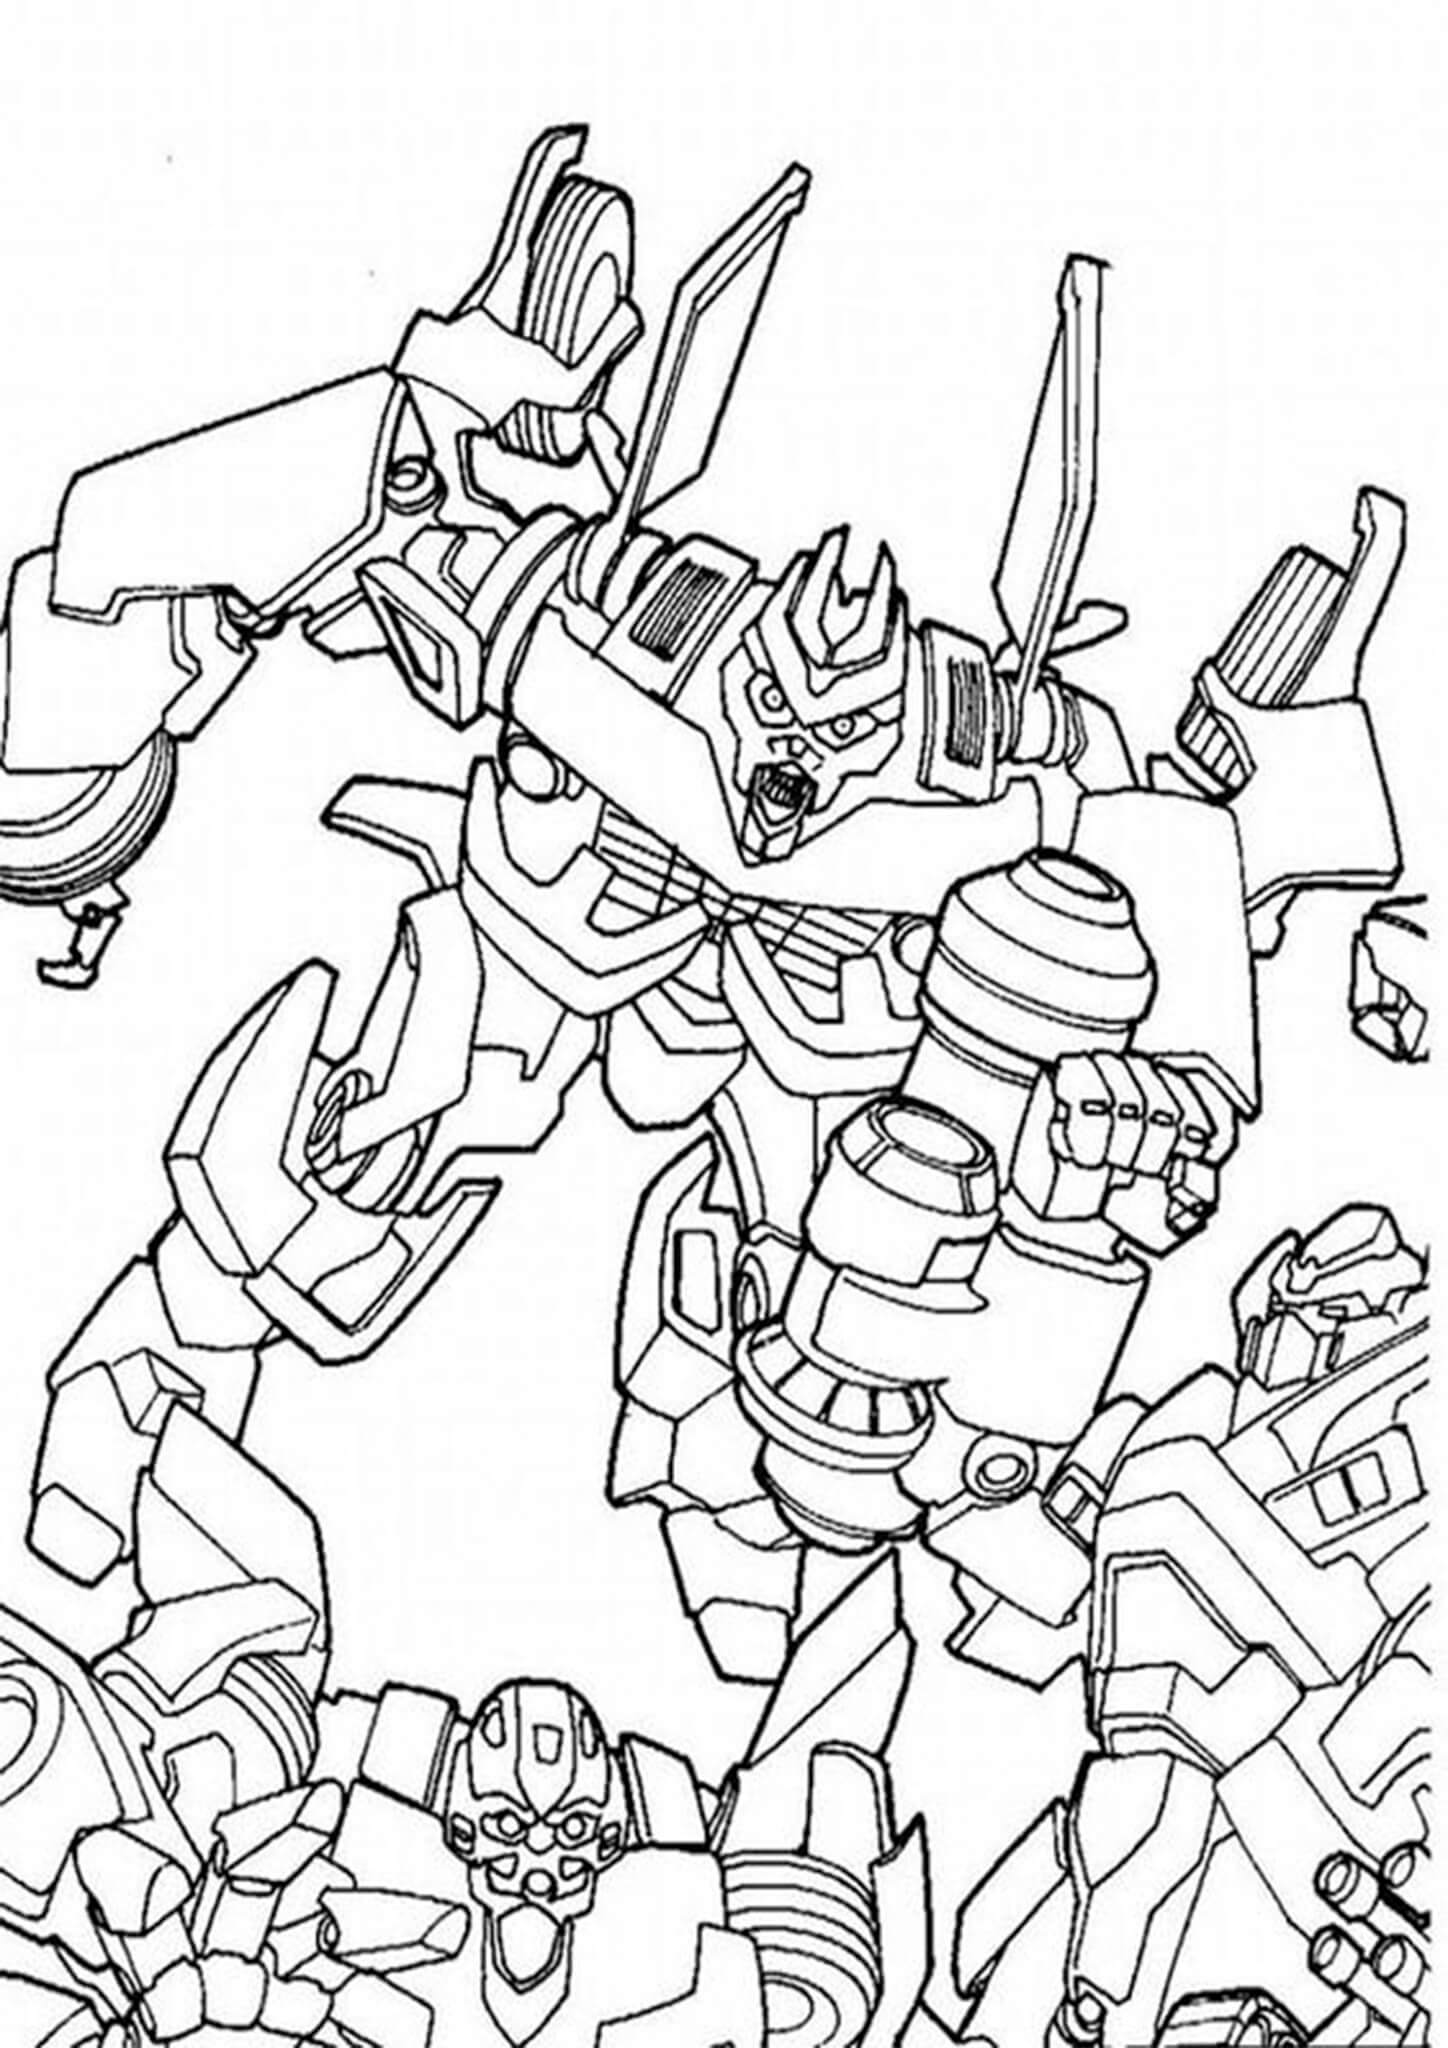 coloring images free easy to print transformers coloring pages tulamama images coloring